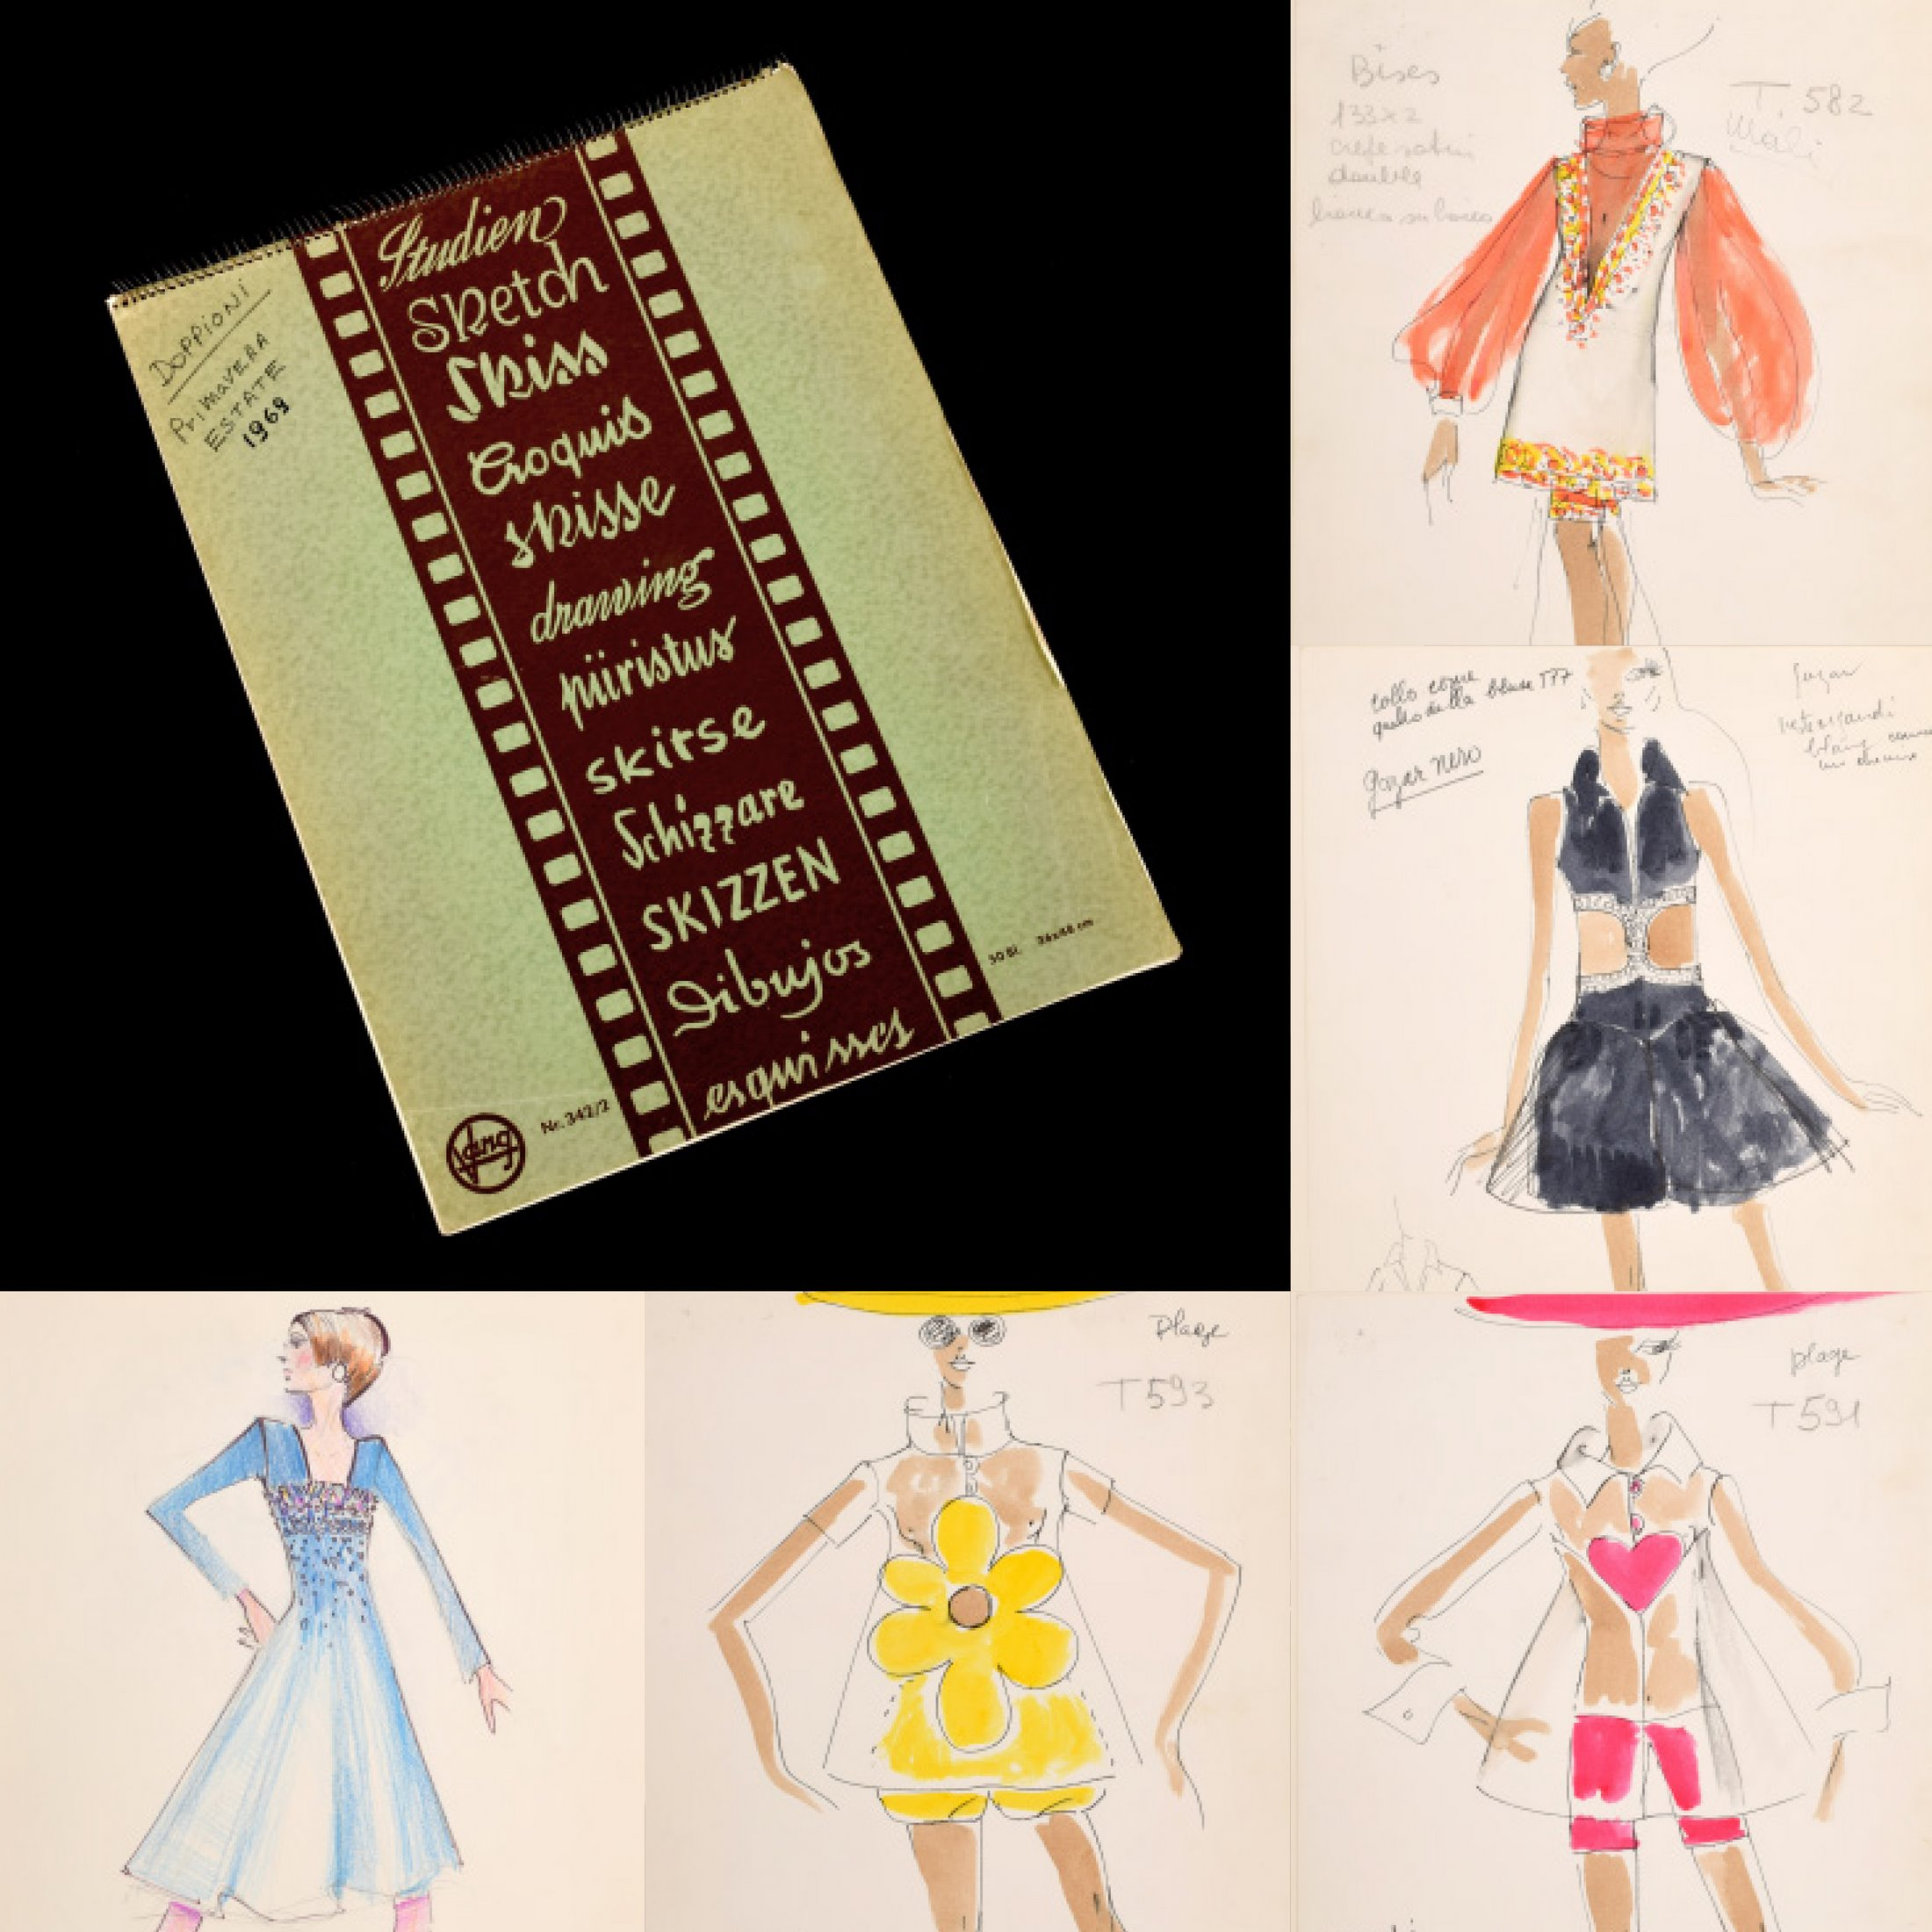 1960s sketchbook/portfolio containing 22 hand-colored, hand-annotated original fashion drawings created by Karl Lagerfeld (German, 1933-2019) while engaged by House of Tiziani, Rome. Estimate: $2,000-$4,000